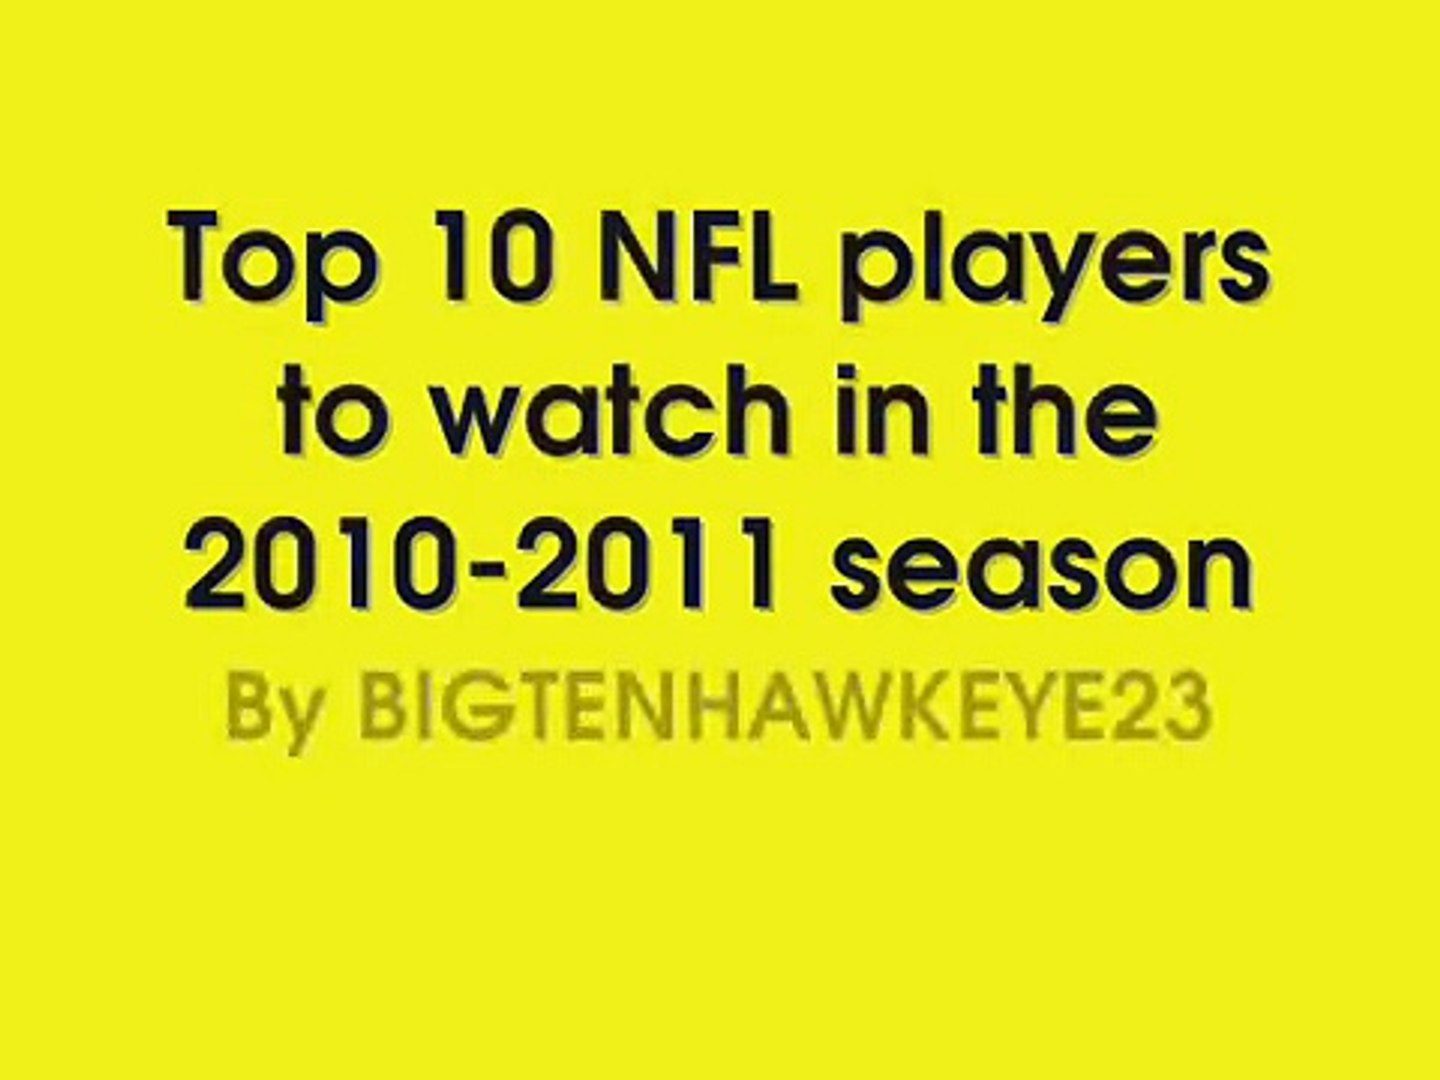 Top 10 NFL players to watch next year